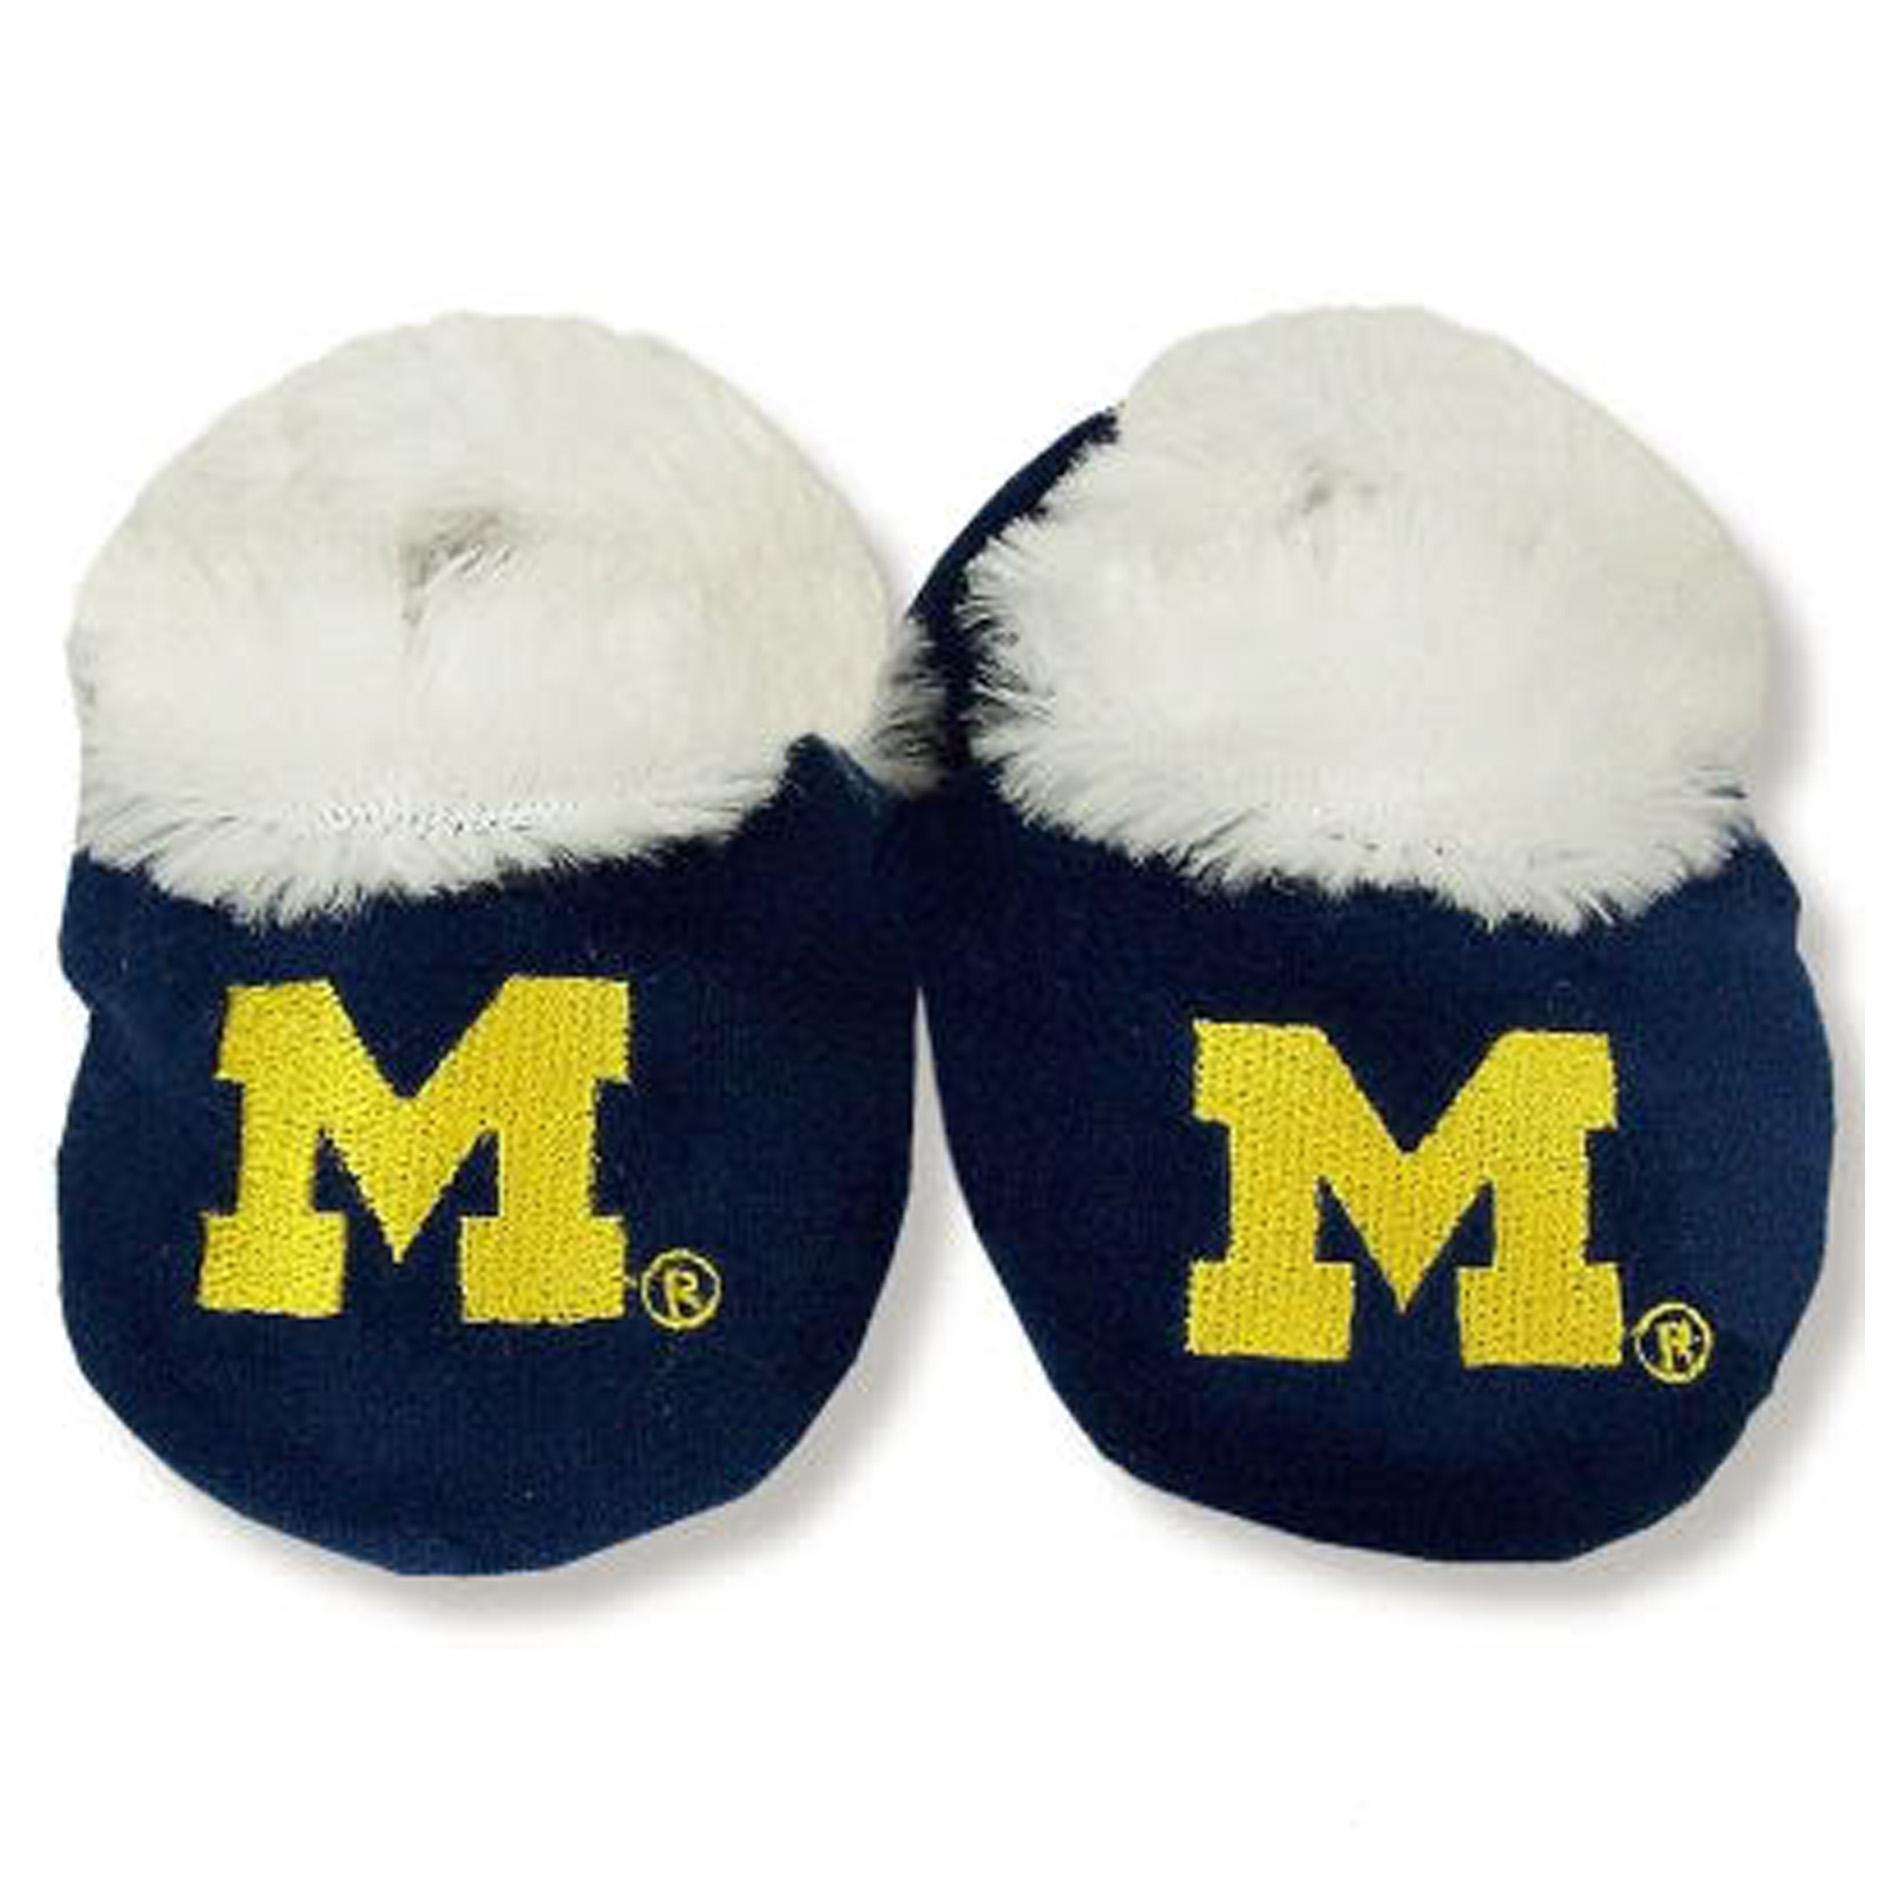 Michigan Wolverines Baby Bootie Slippers